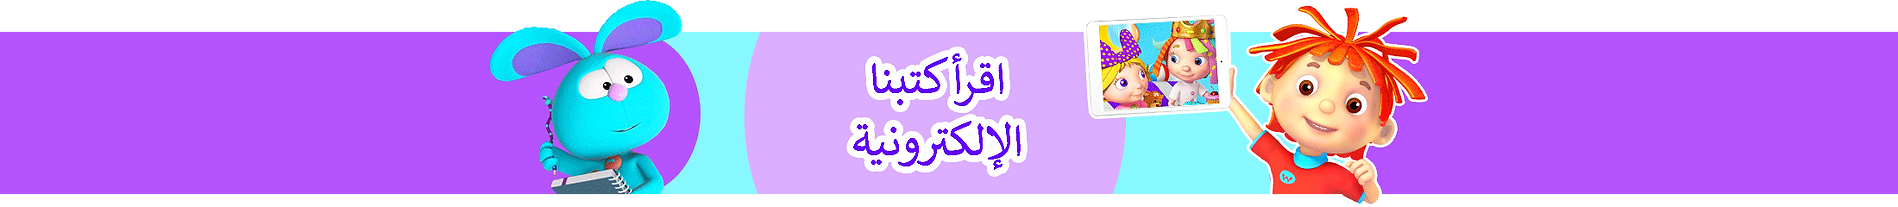 Arabic---Read-Our-eBooks---Banner.png